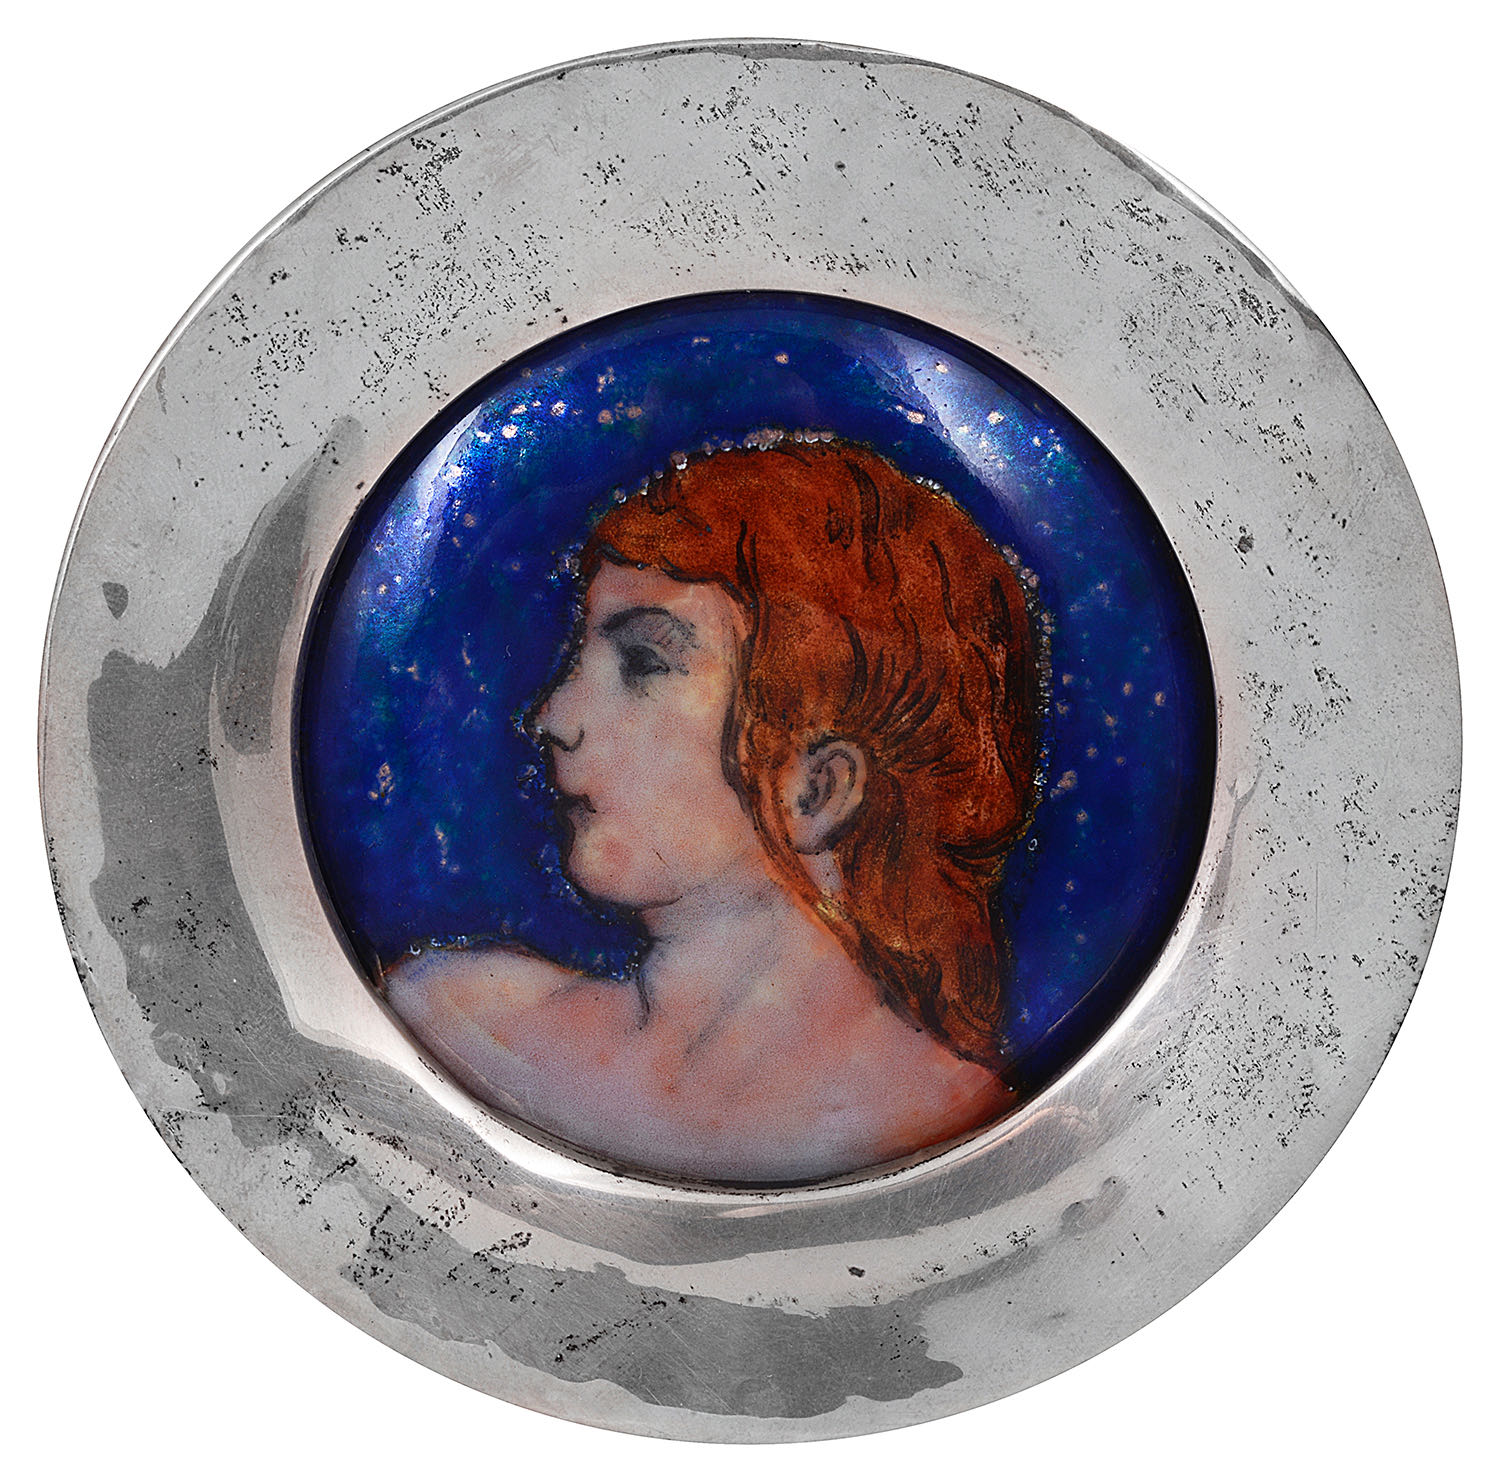 Lot 11 - An Arts & Crafts enamel on copper portrait roundel in a circular silver frame